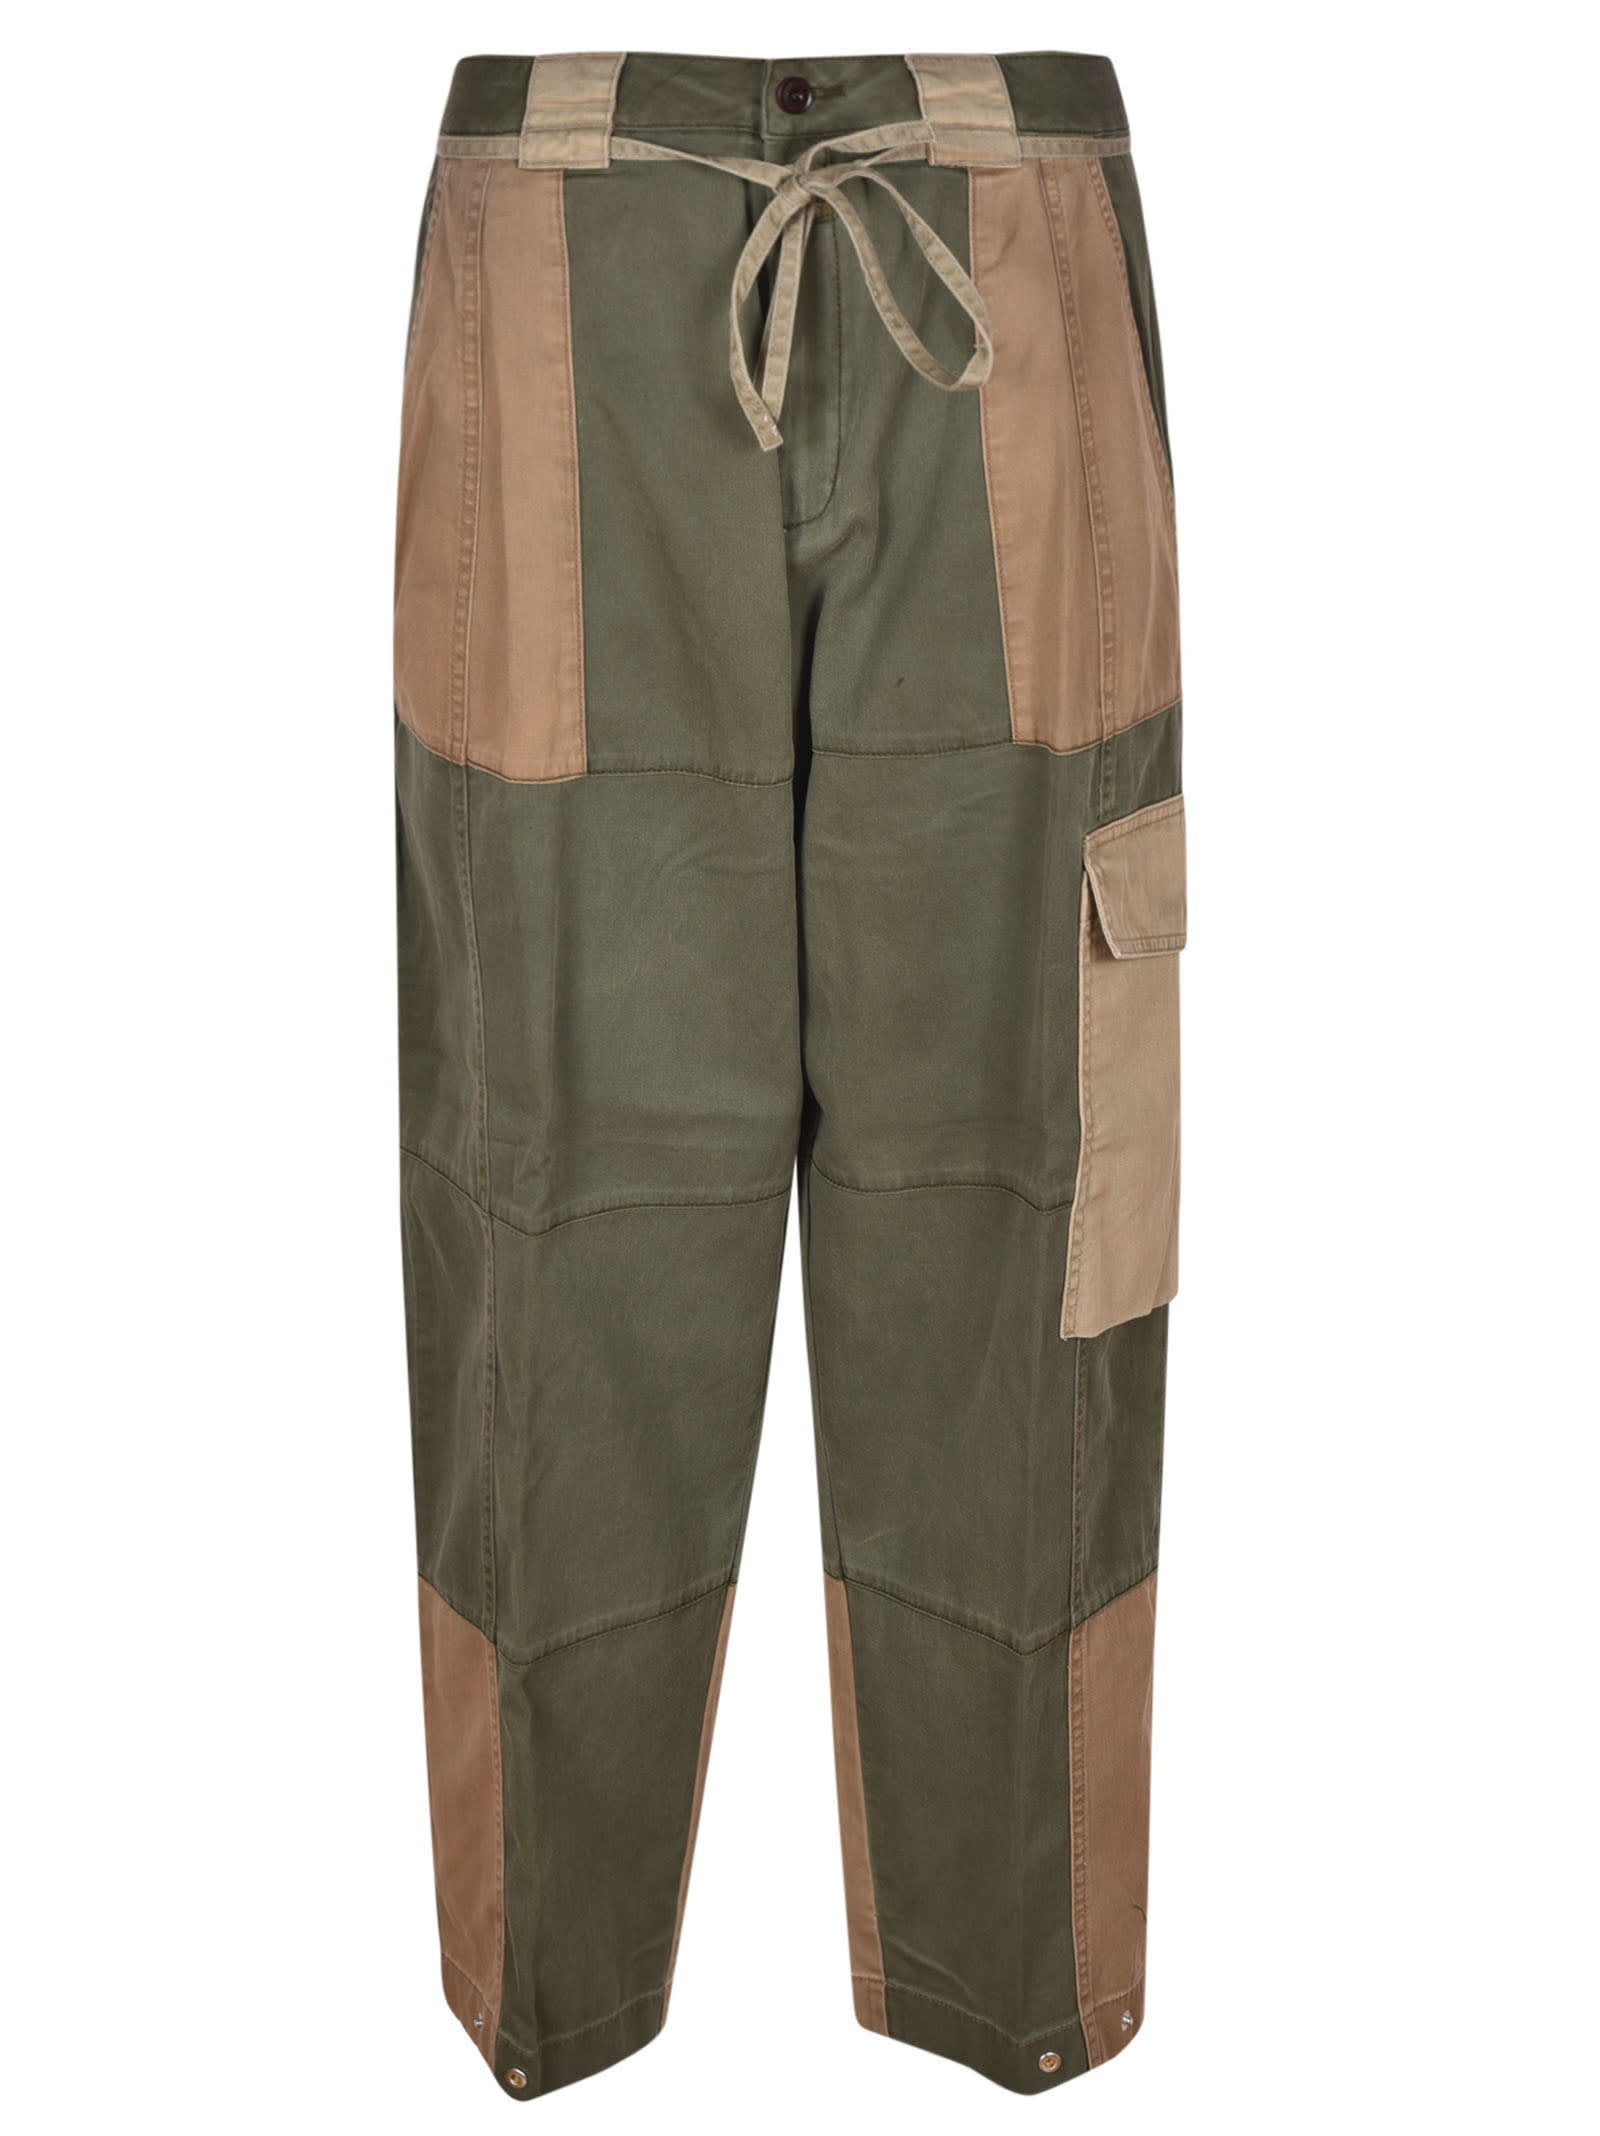 Closed Sinya Cargo Pants In Thyme